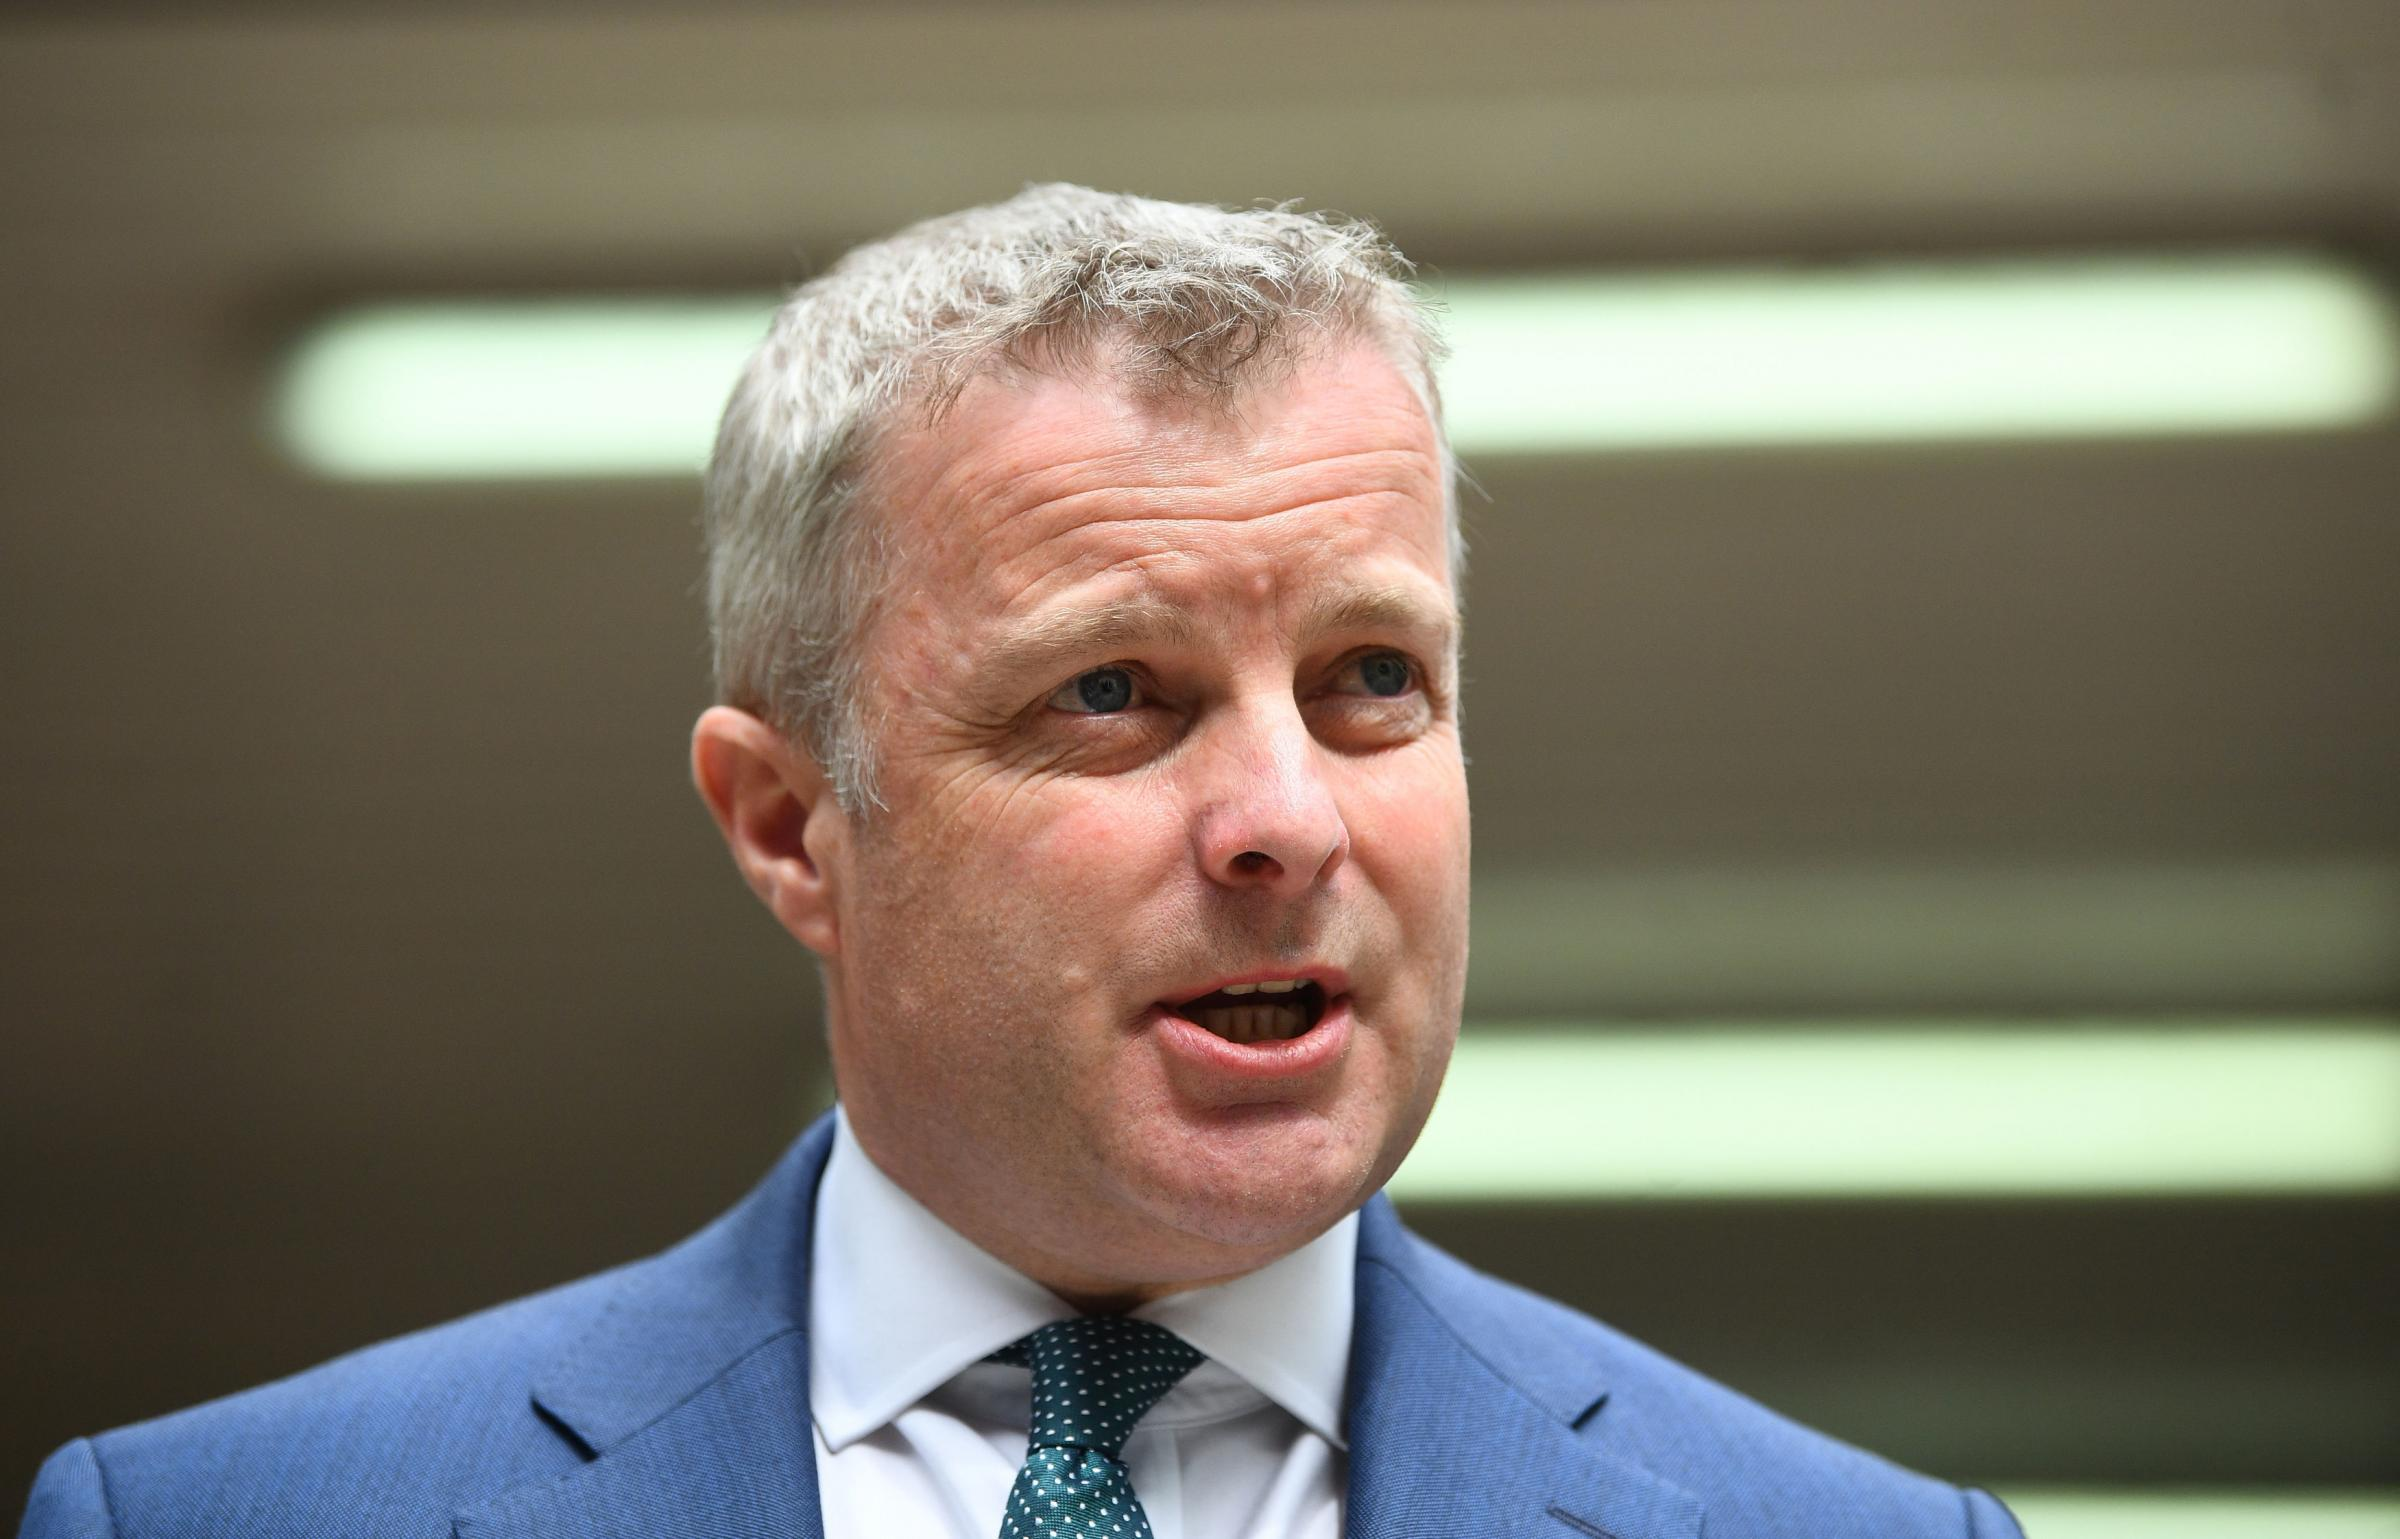 Brecon and Radnorshire MP Chris Davies apologises after being sentenced